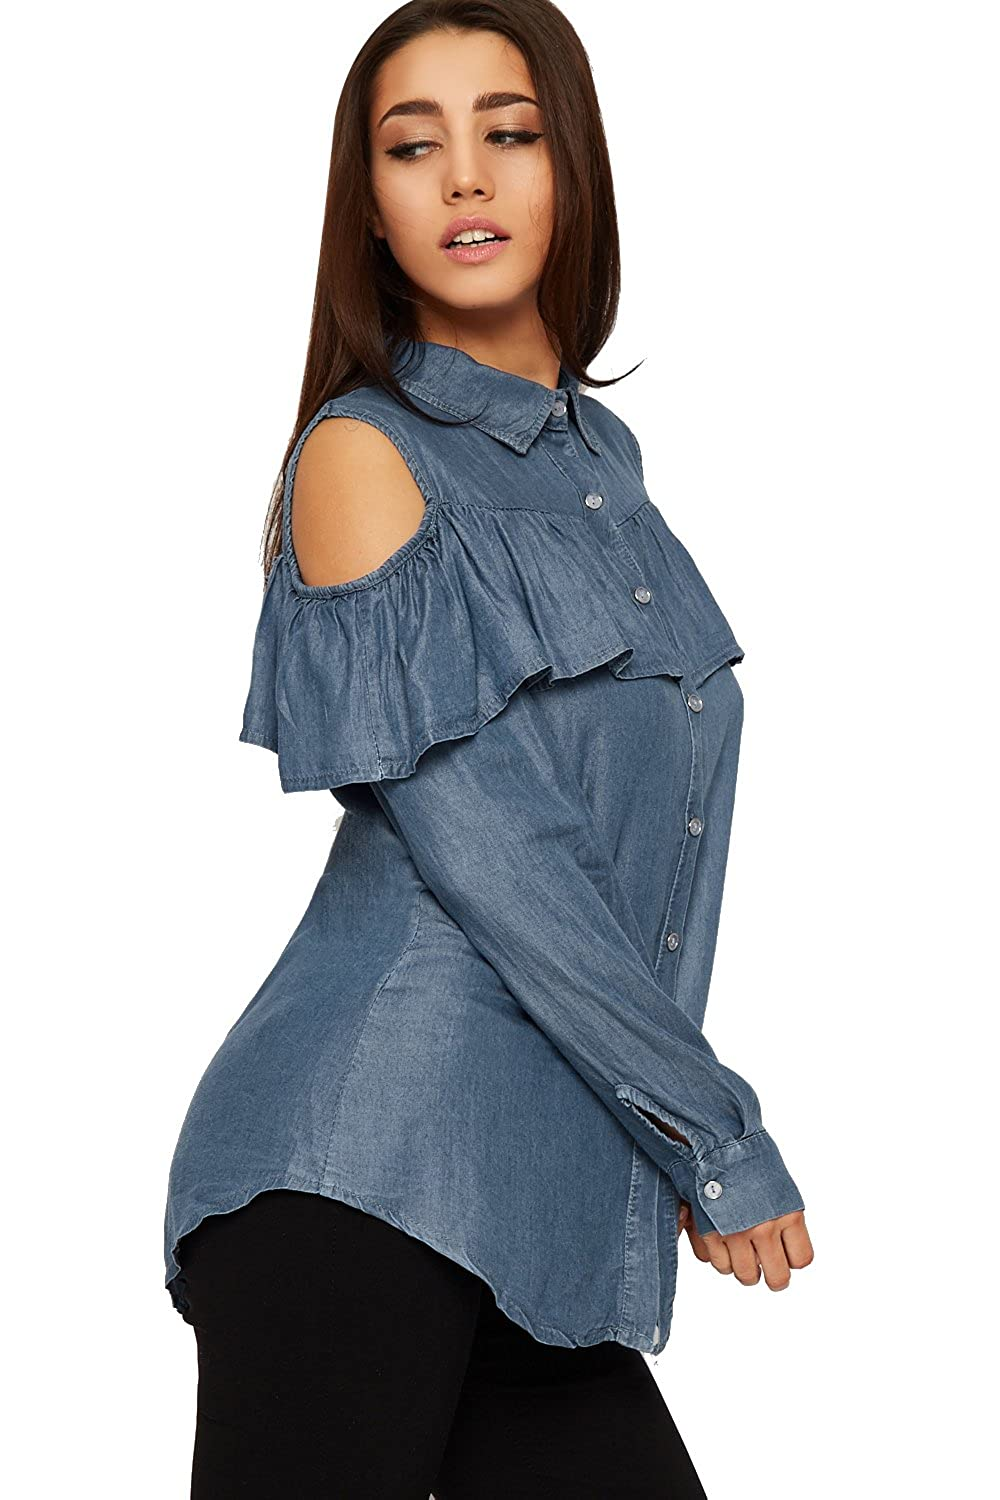 d583c9b0a91811 WearAll Women s Cut Out Cold Shoulder Denim Shirt Top Ladies Frill Long  Sleeve Button - Blue - 12-14  Amazon.co.uk  Clothing